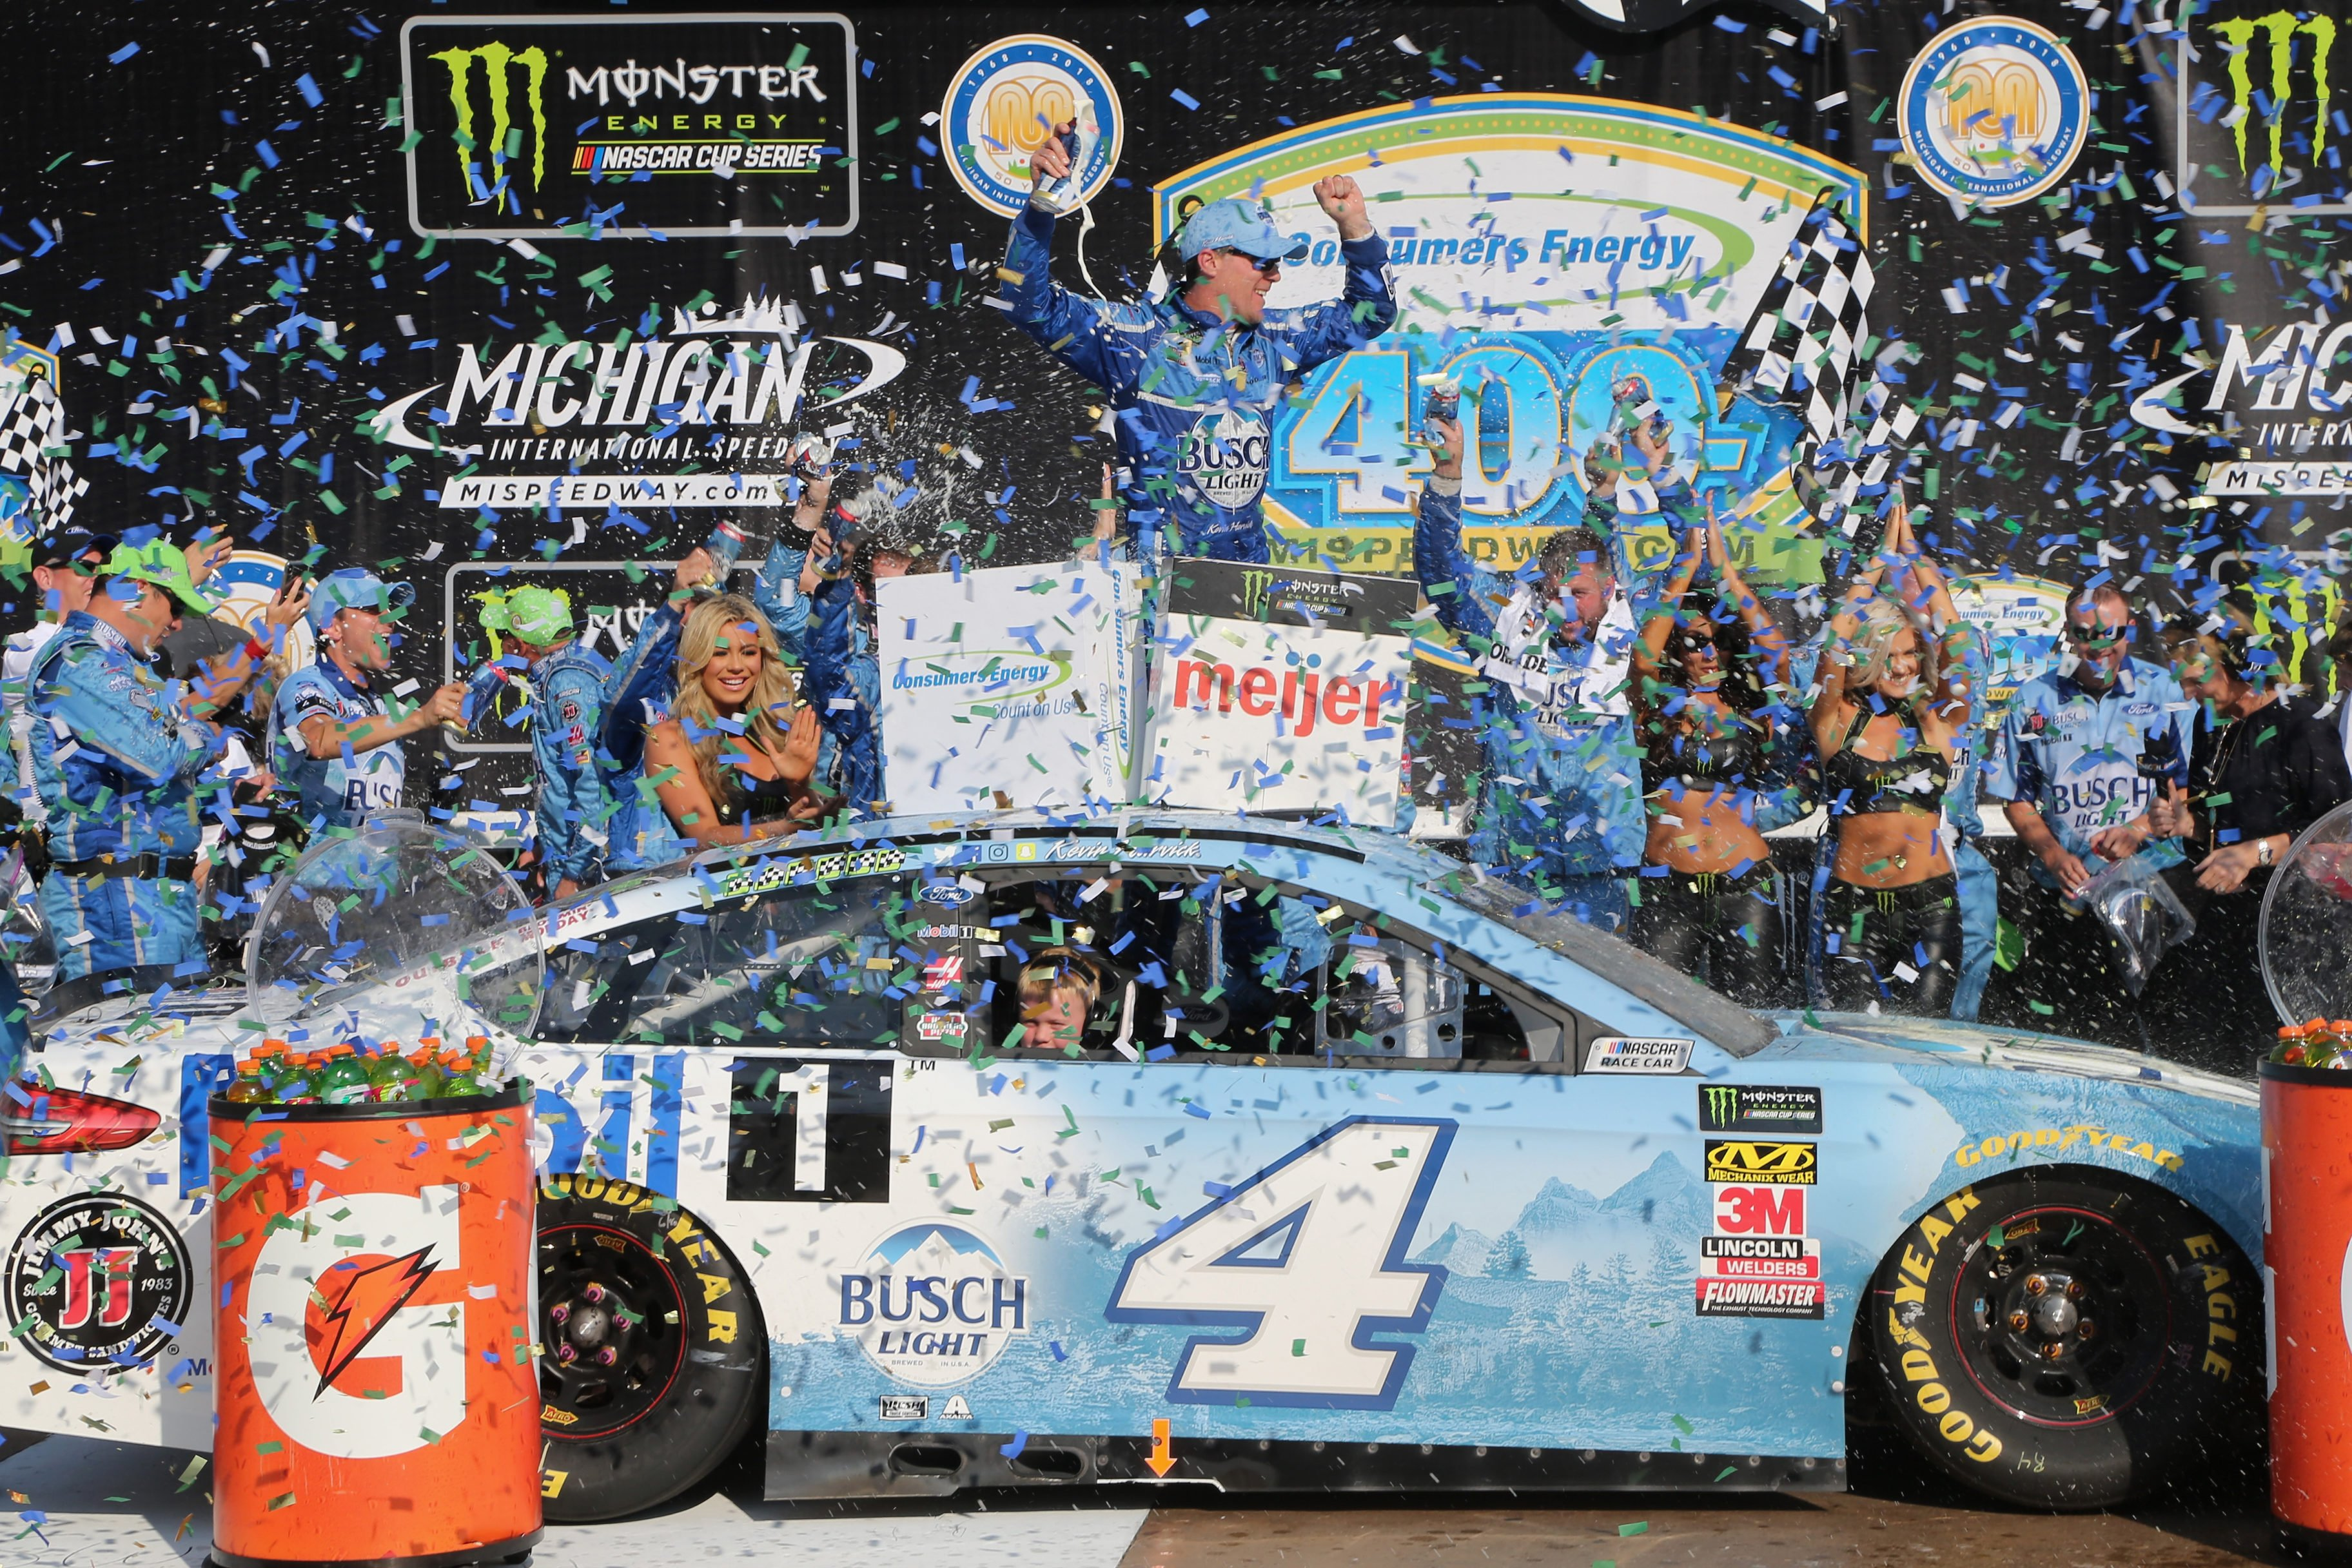 Kevin Harvick - Monster Energy victory lane